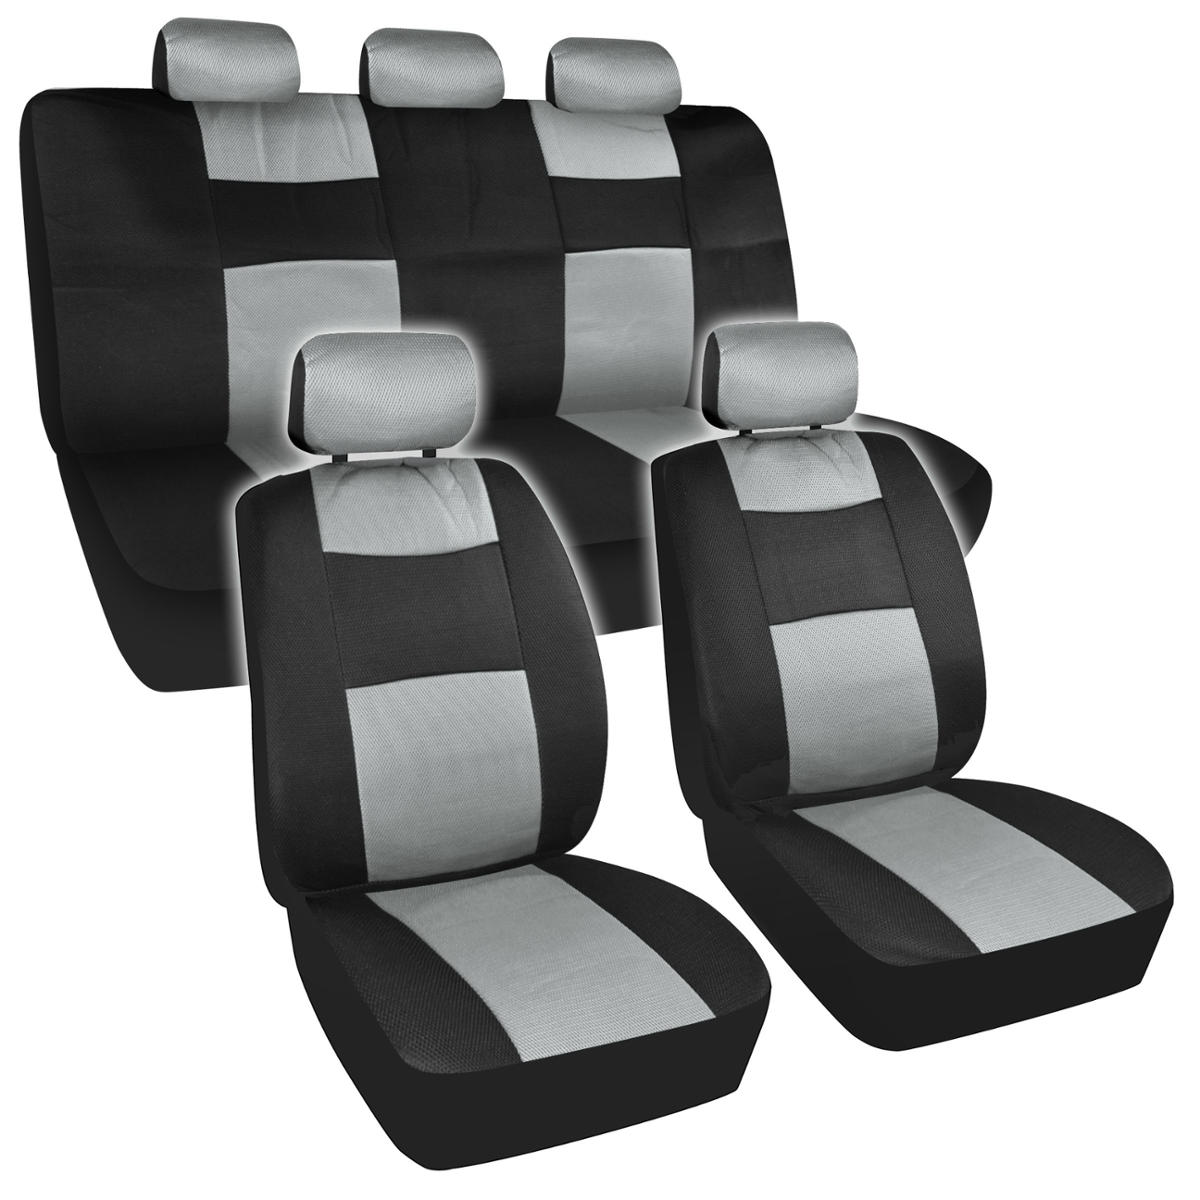 11 Piece Car Truck Seat Cover: USA Non Fading 2 Tone Gray Car Seat Cover 11 Pc Cover Mesh